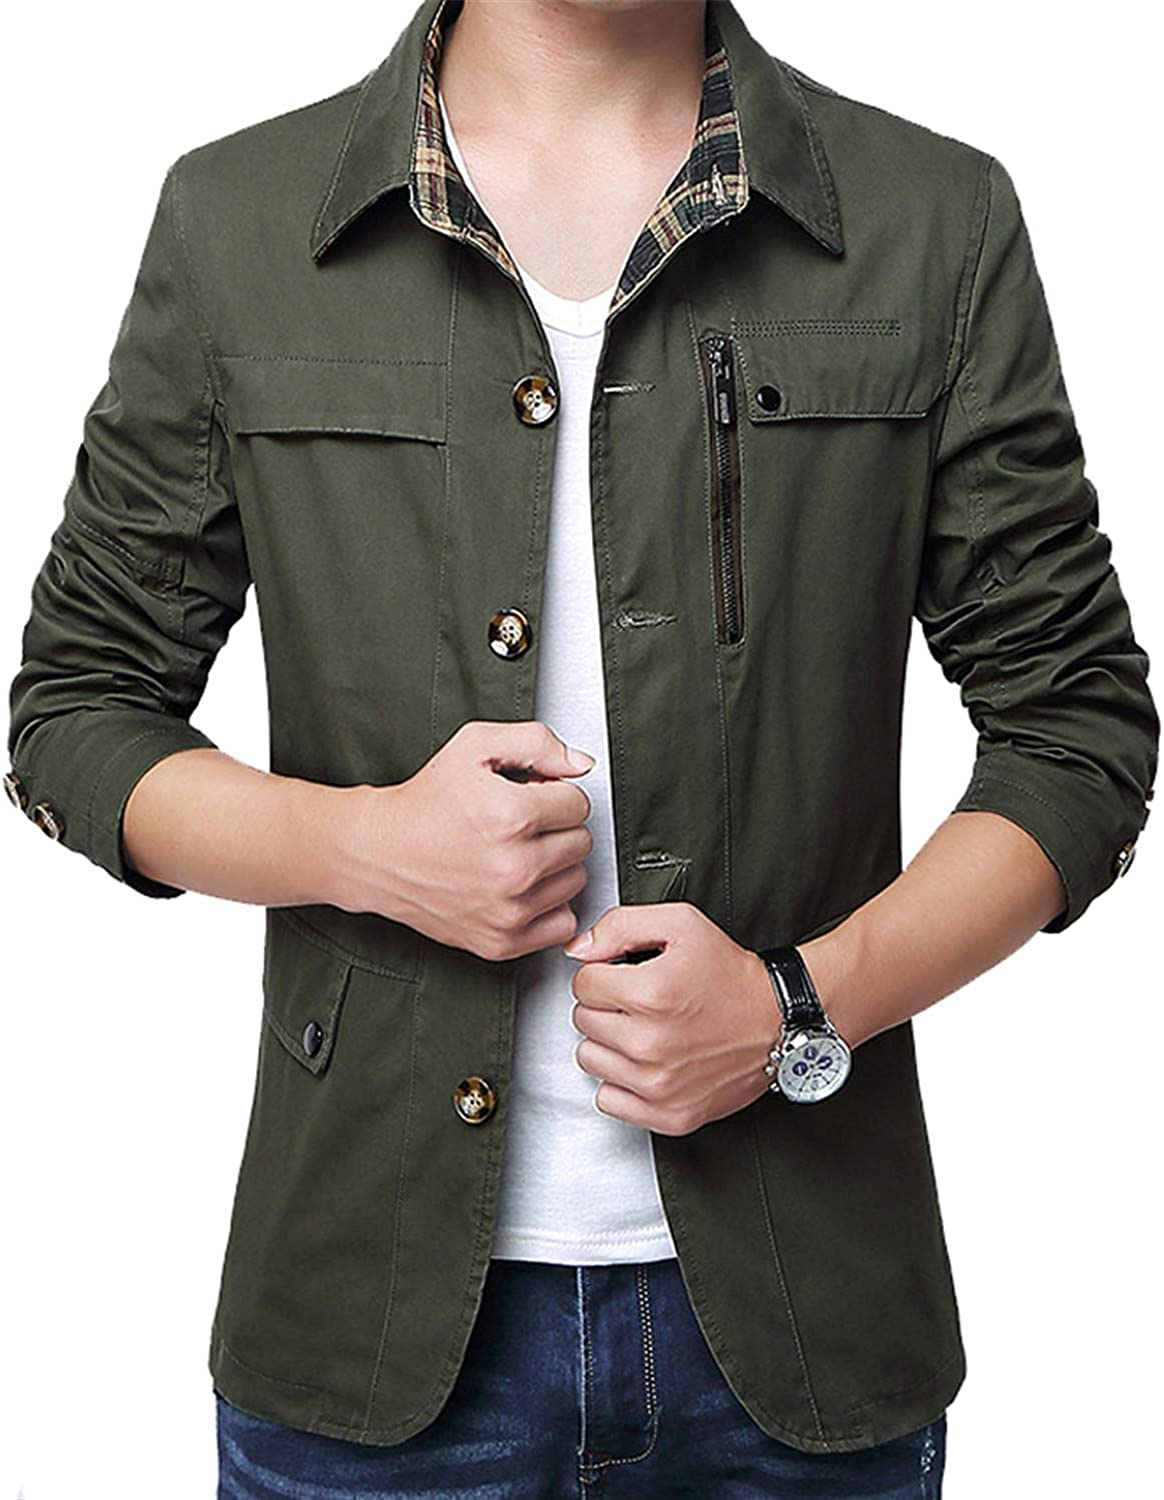 New Mens Jacket Coat 4XL Casual Solid Men Outerwear Slim Fit Khaki Army Cotton Male Jackets SA220 Army Green XXXL